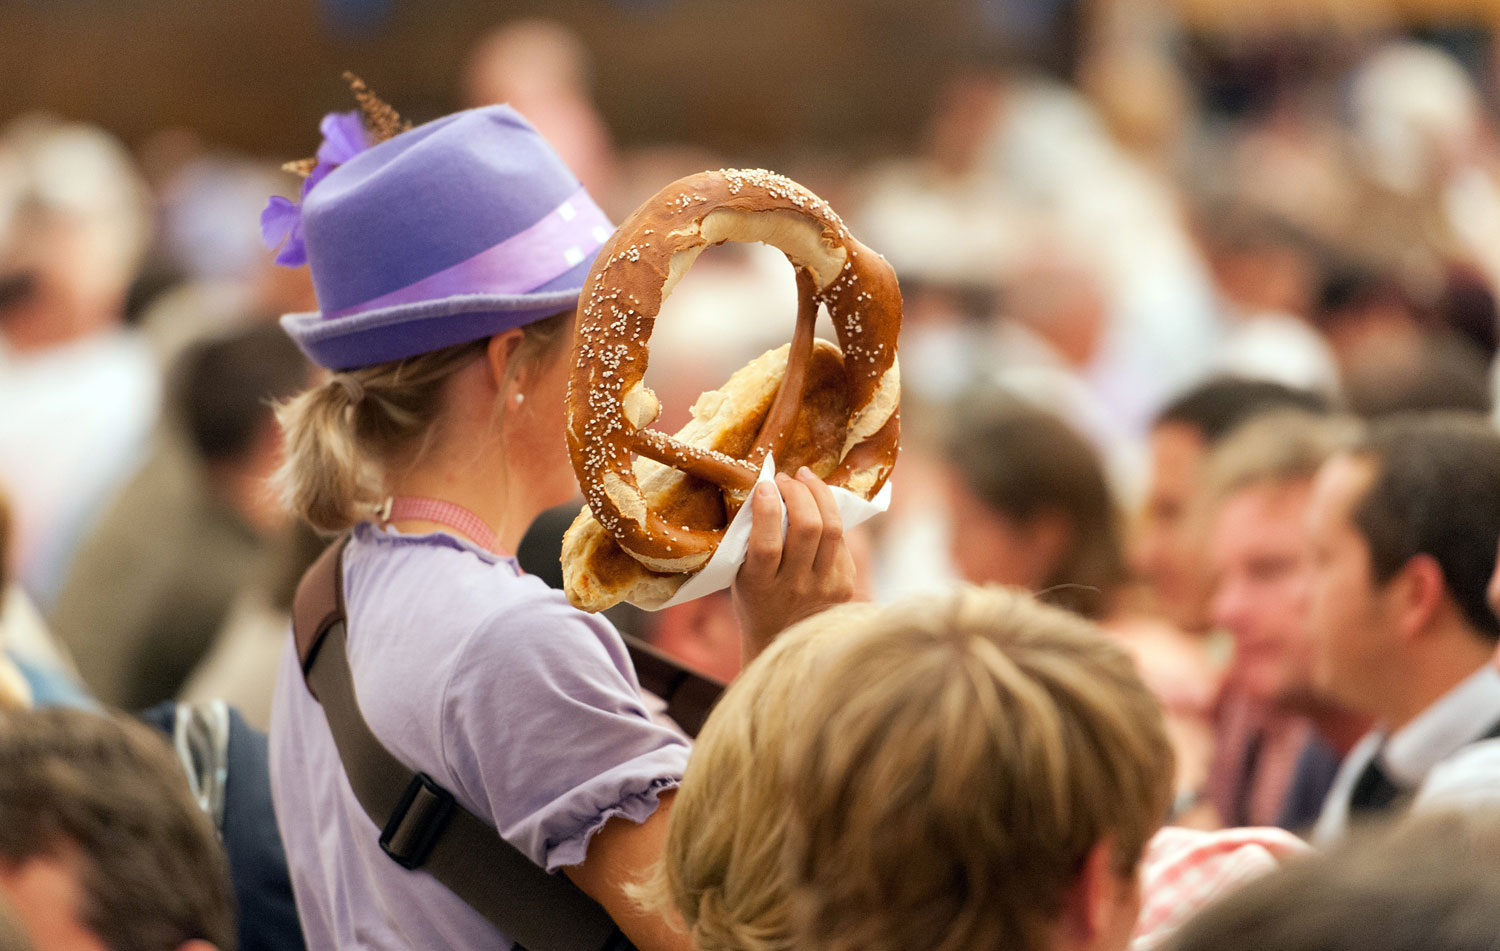 A pretzel seller in a beer tent at the Oktoberfest in Munich on Sept. 26, 2012